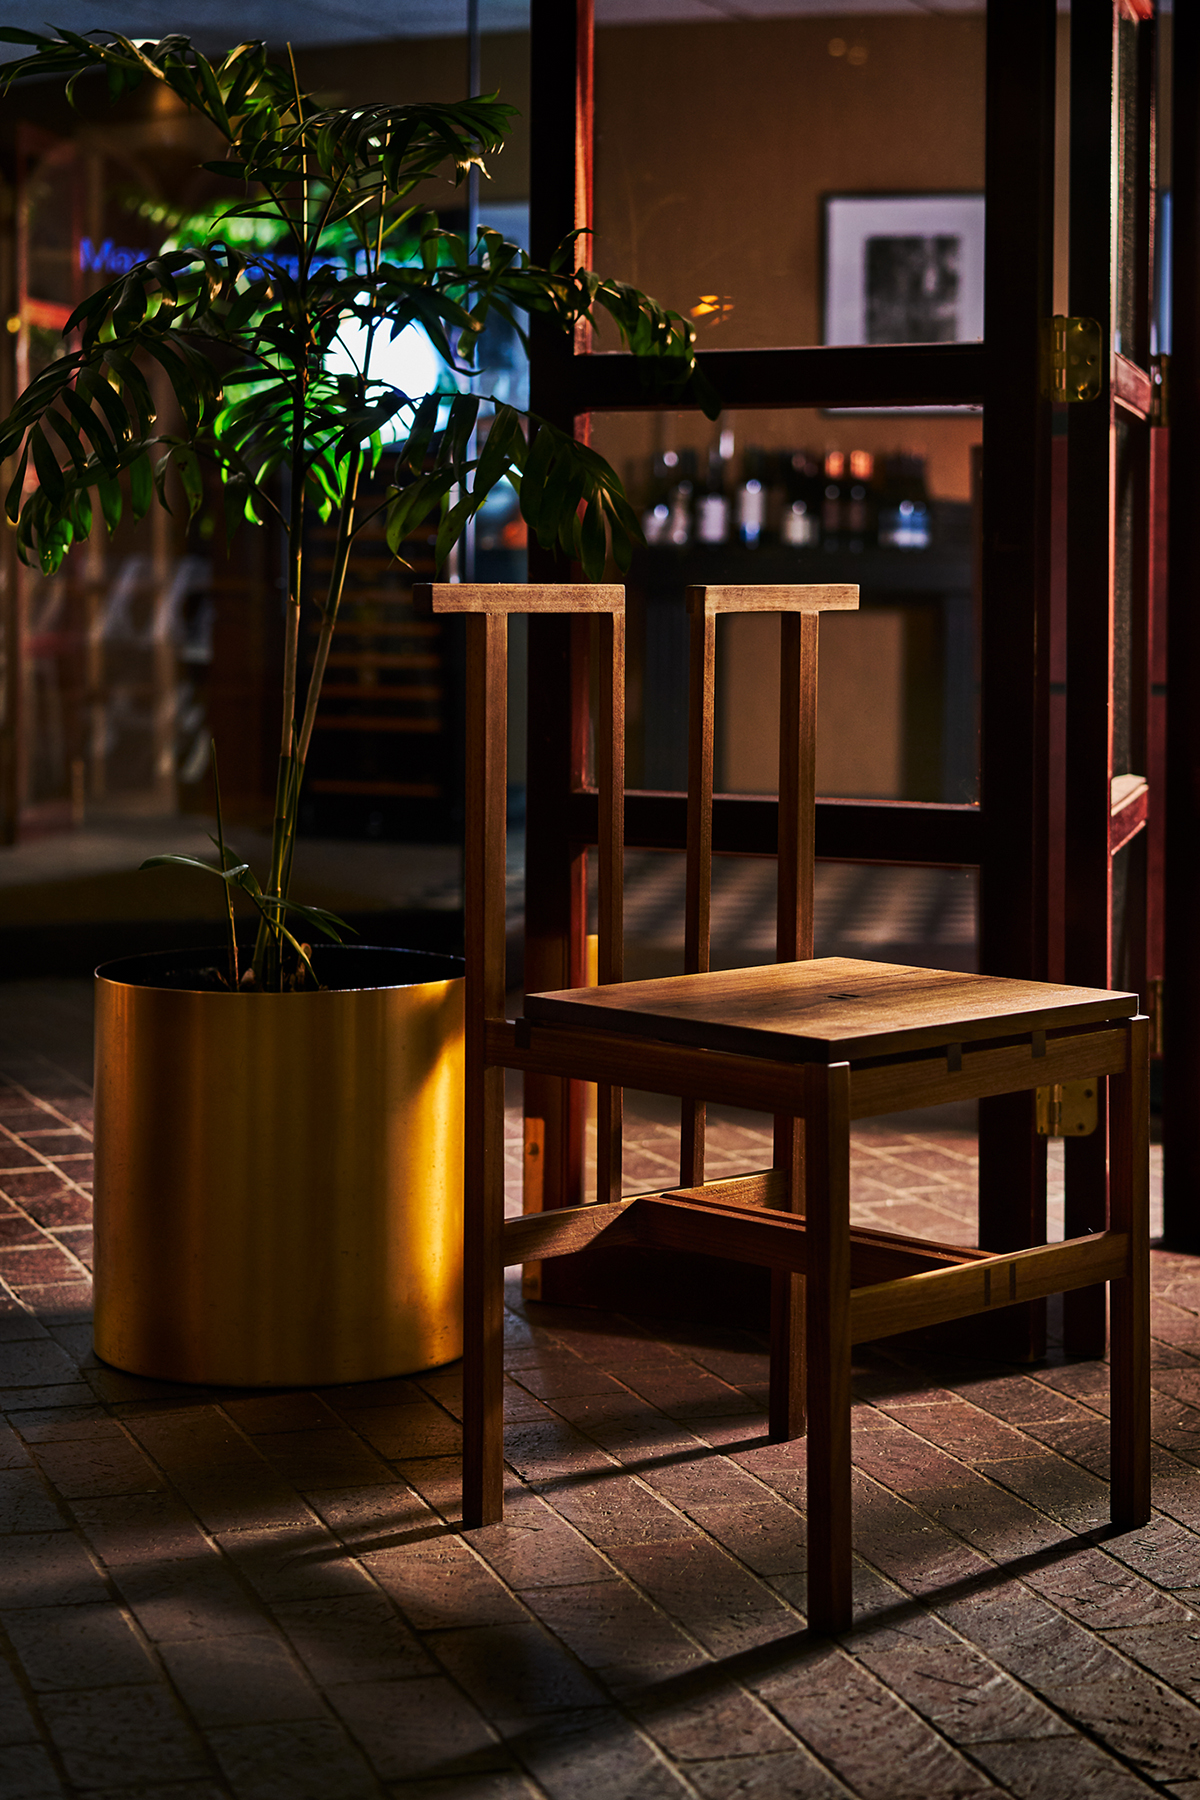 A chair designed by Yichi Cheng next to a plant.